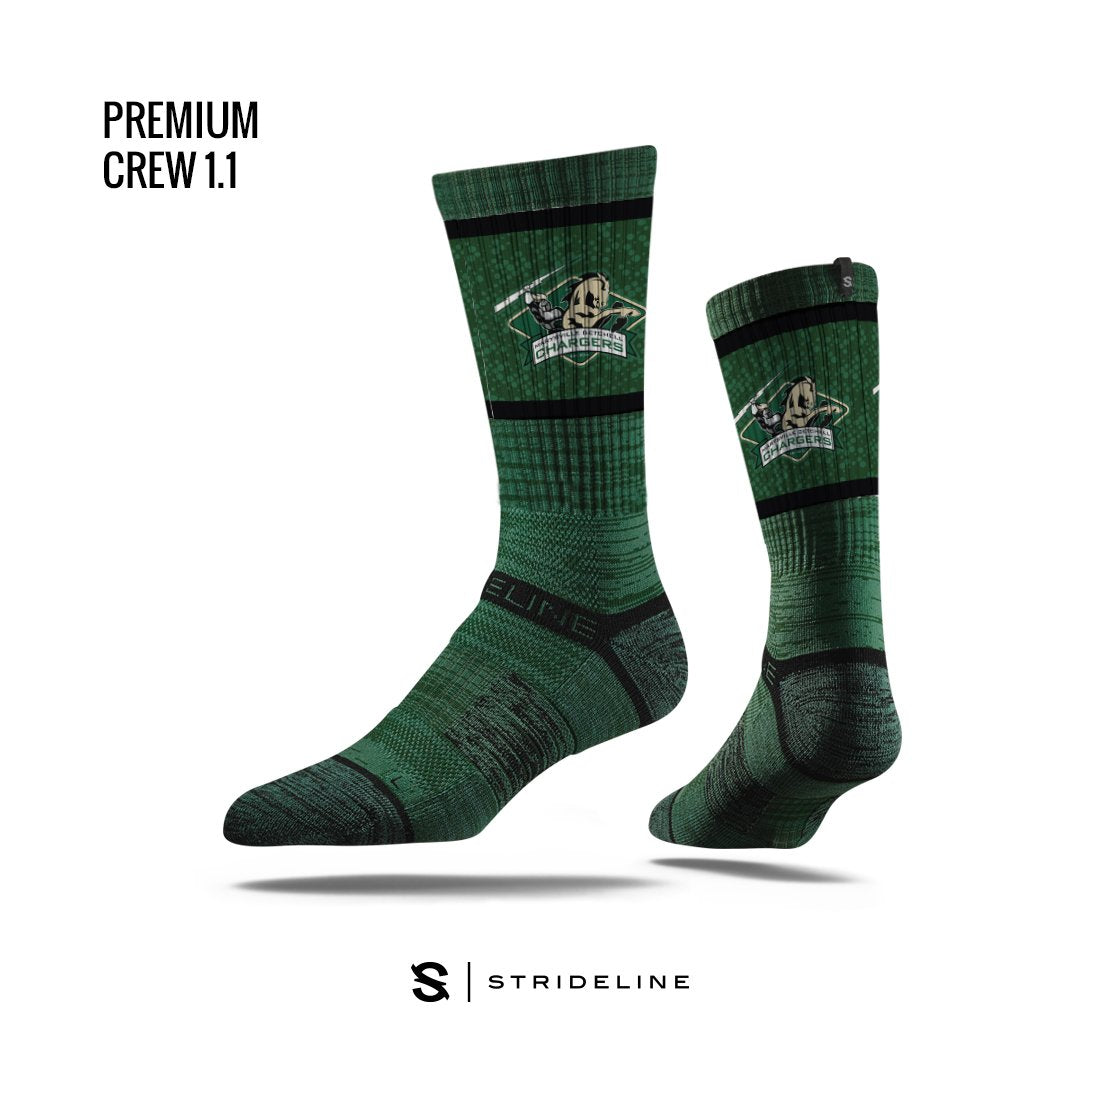 Marysville Getchell High School Apparel | Socks | Premium